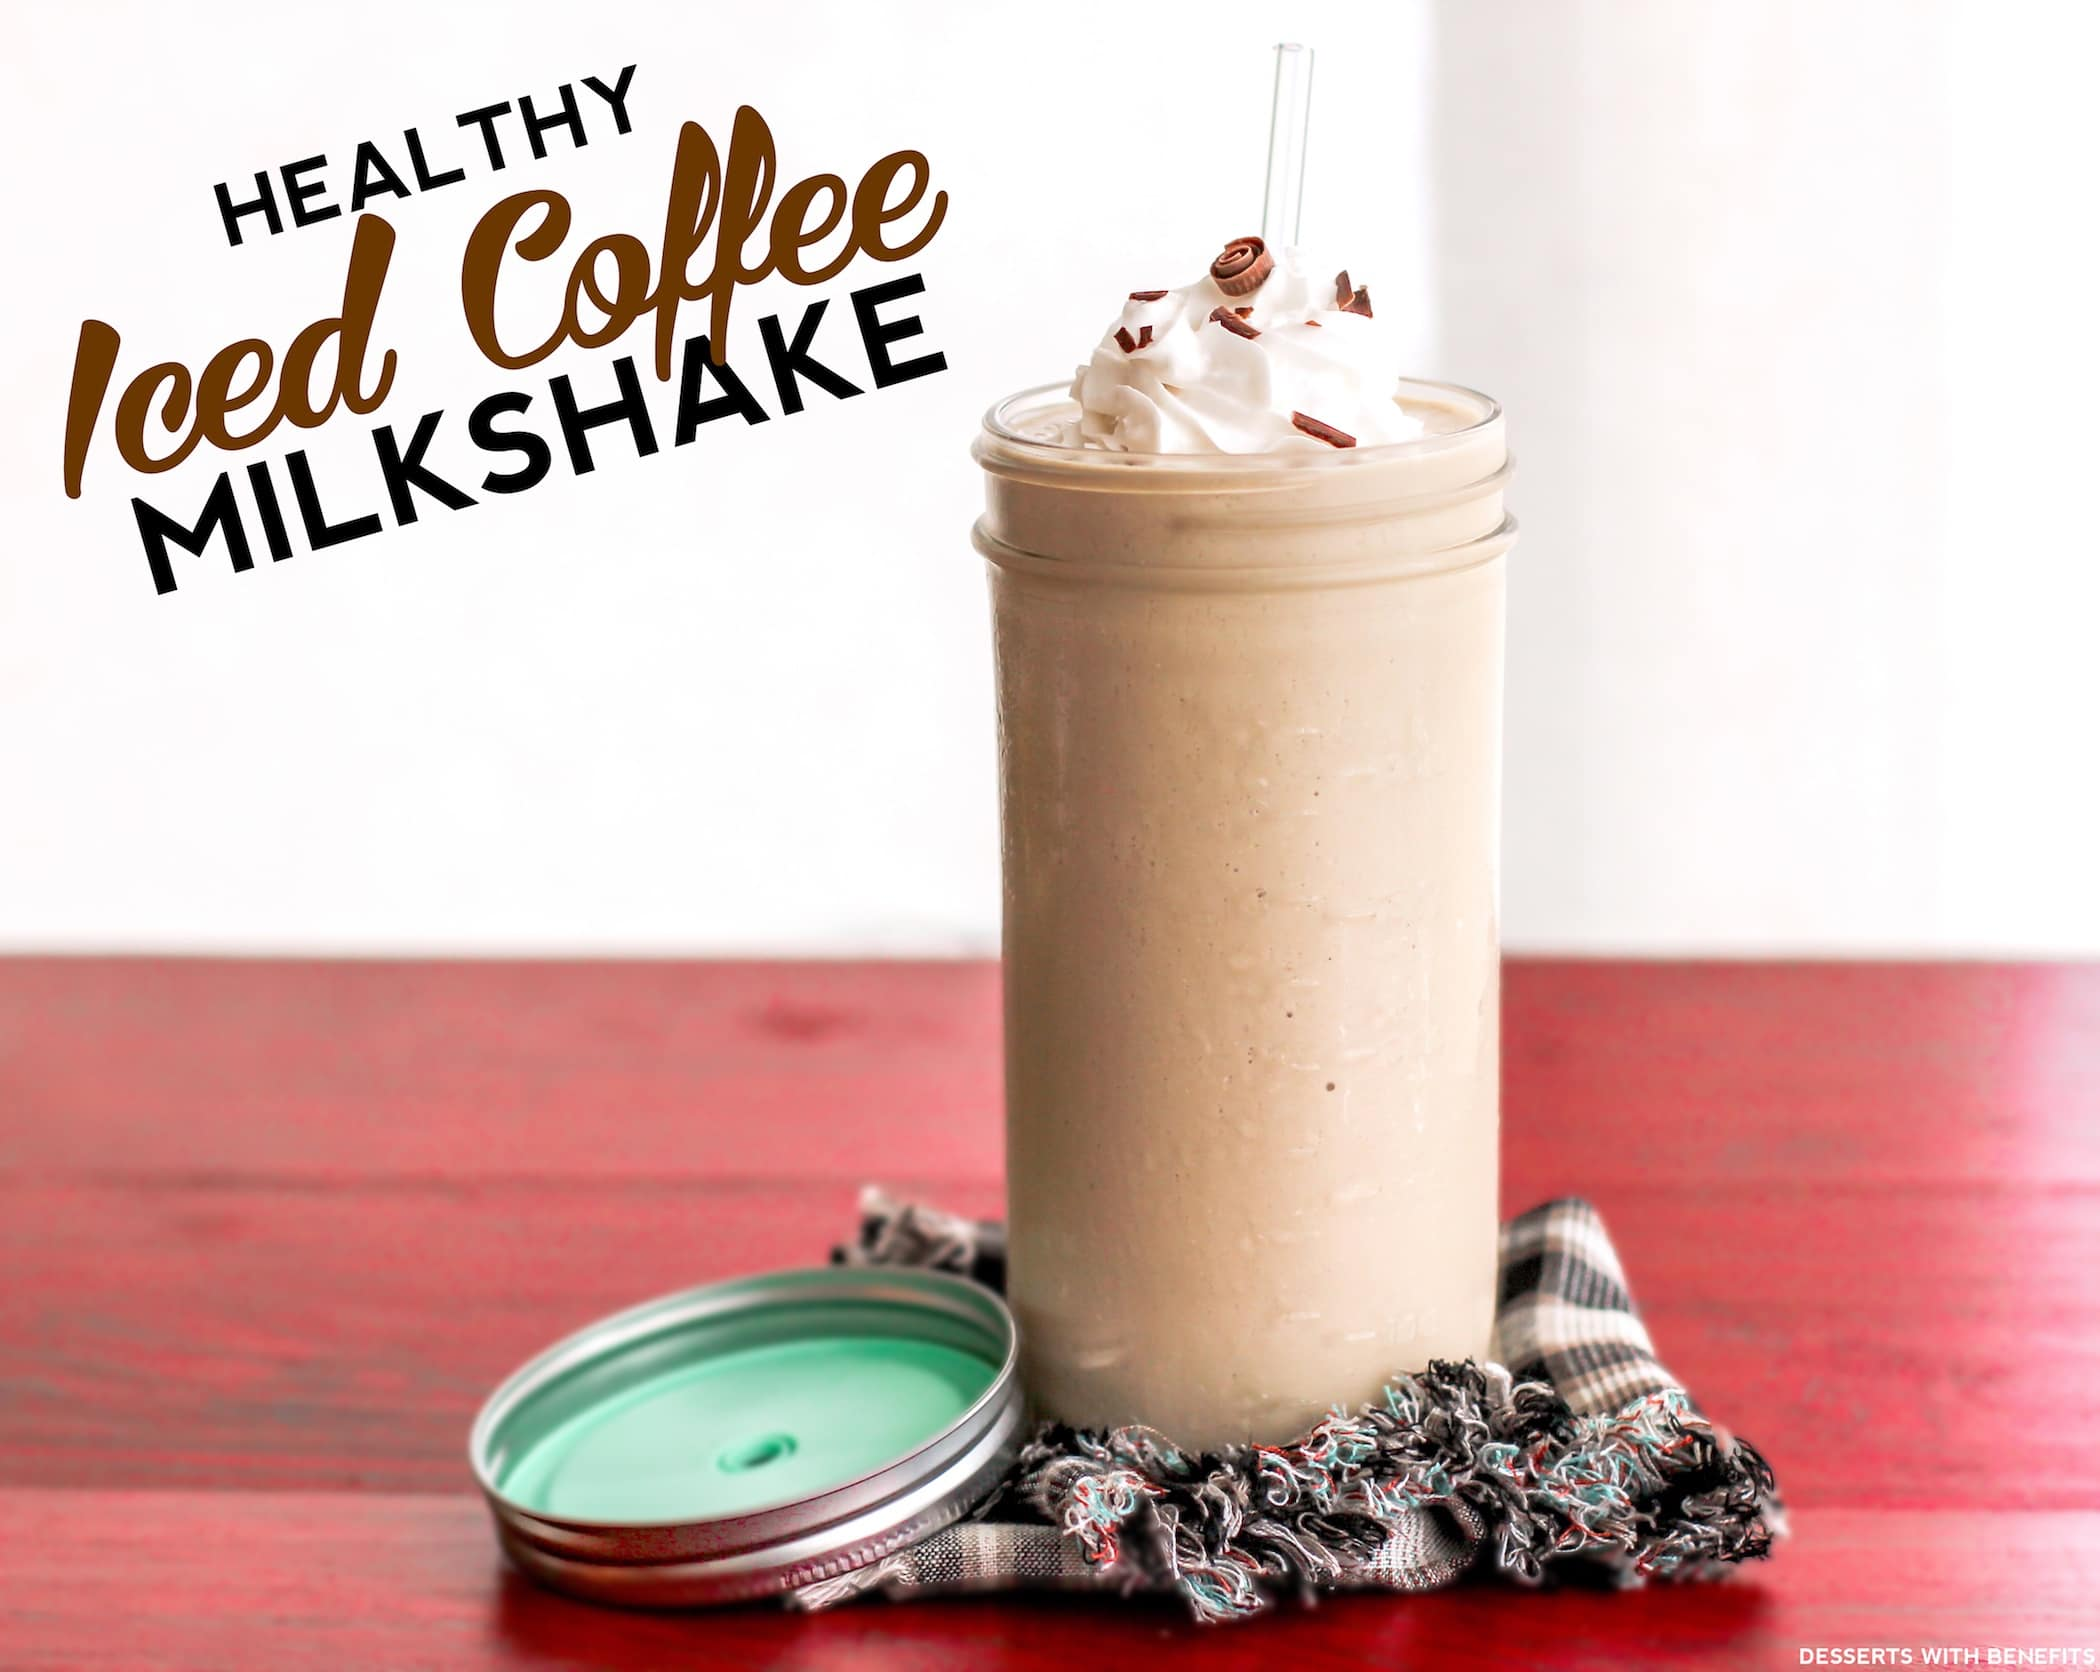 Healthy Iced Coffee Milkshake (sugar free, low carb, low fat, high protein) - Healthy Dessert Recipes at Desserts with Benefits